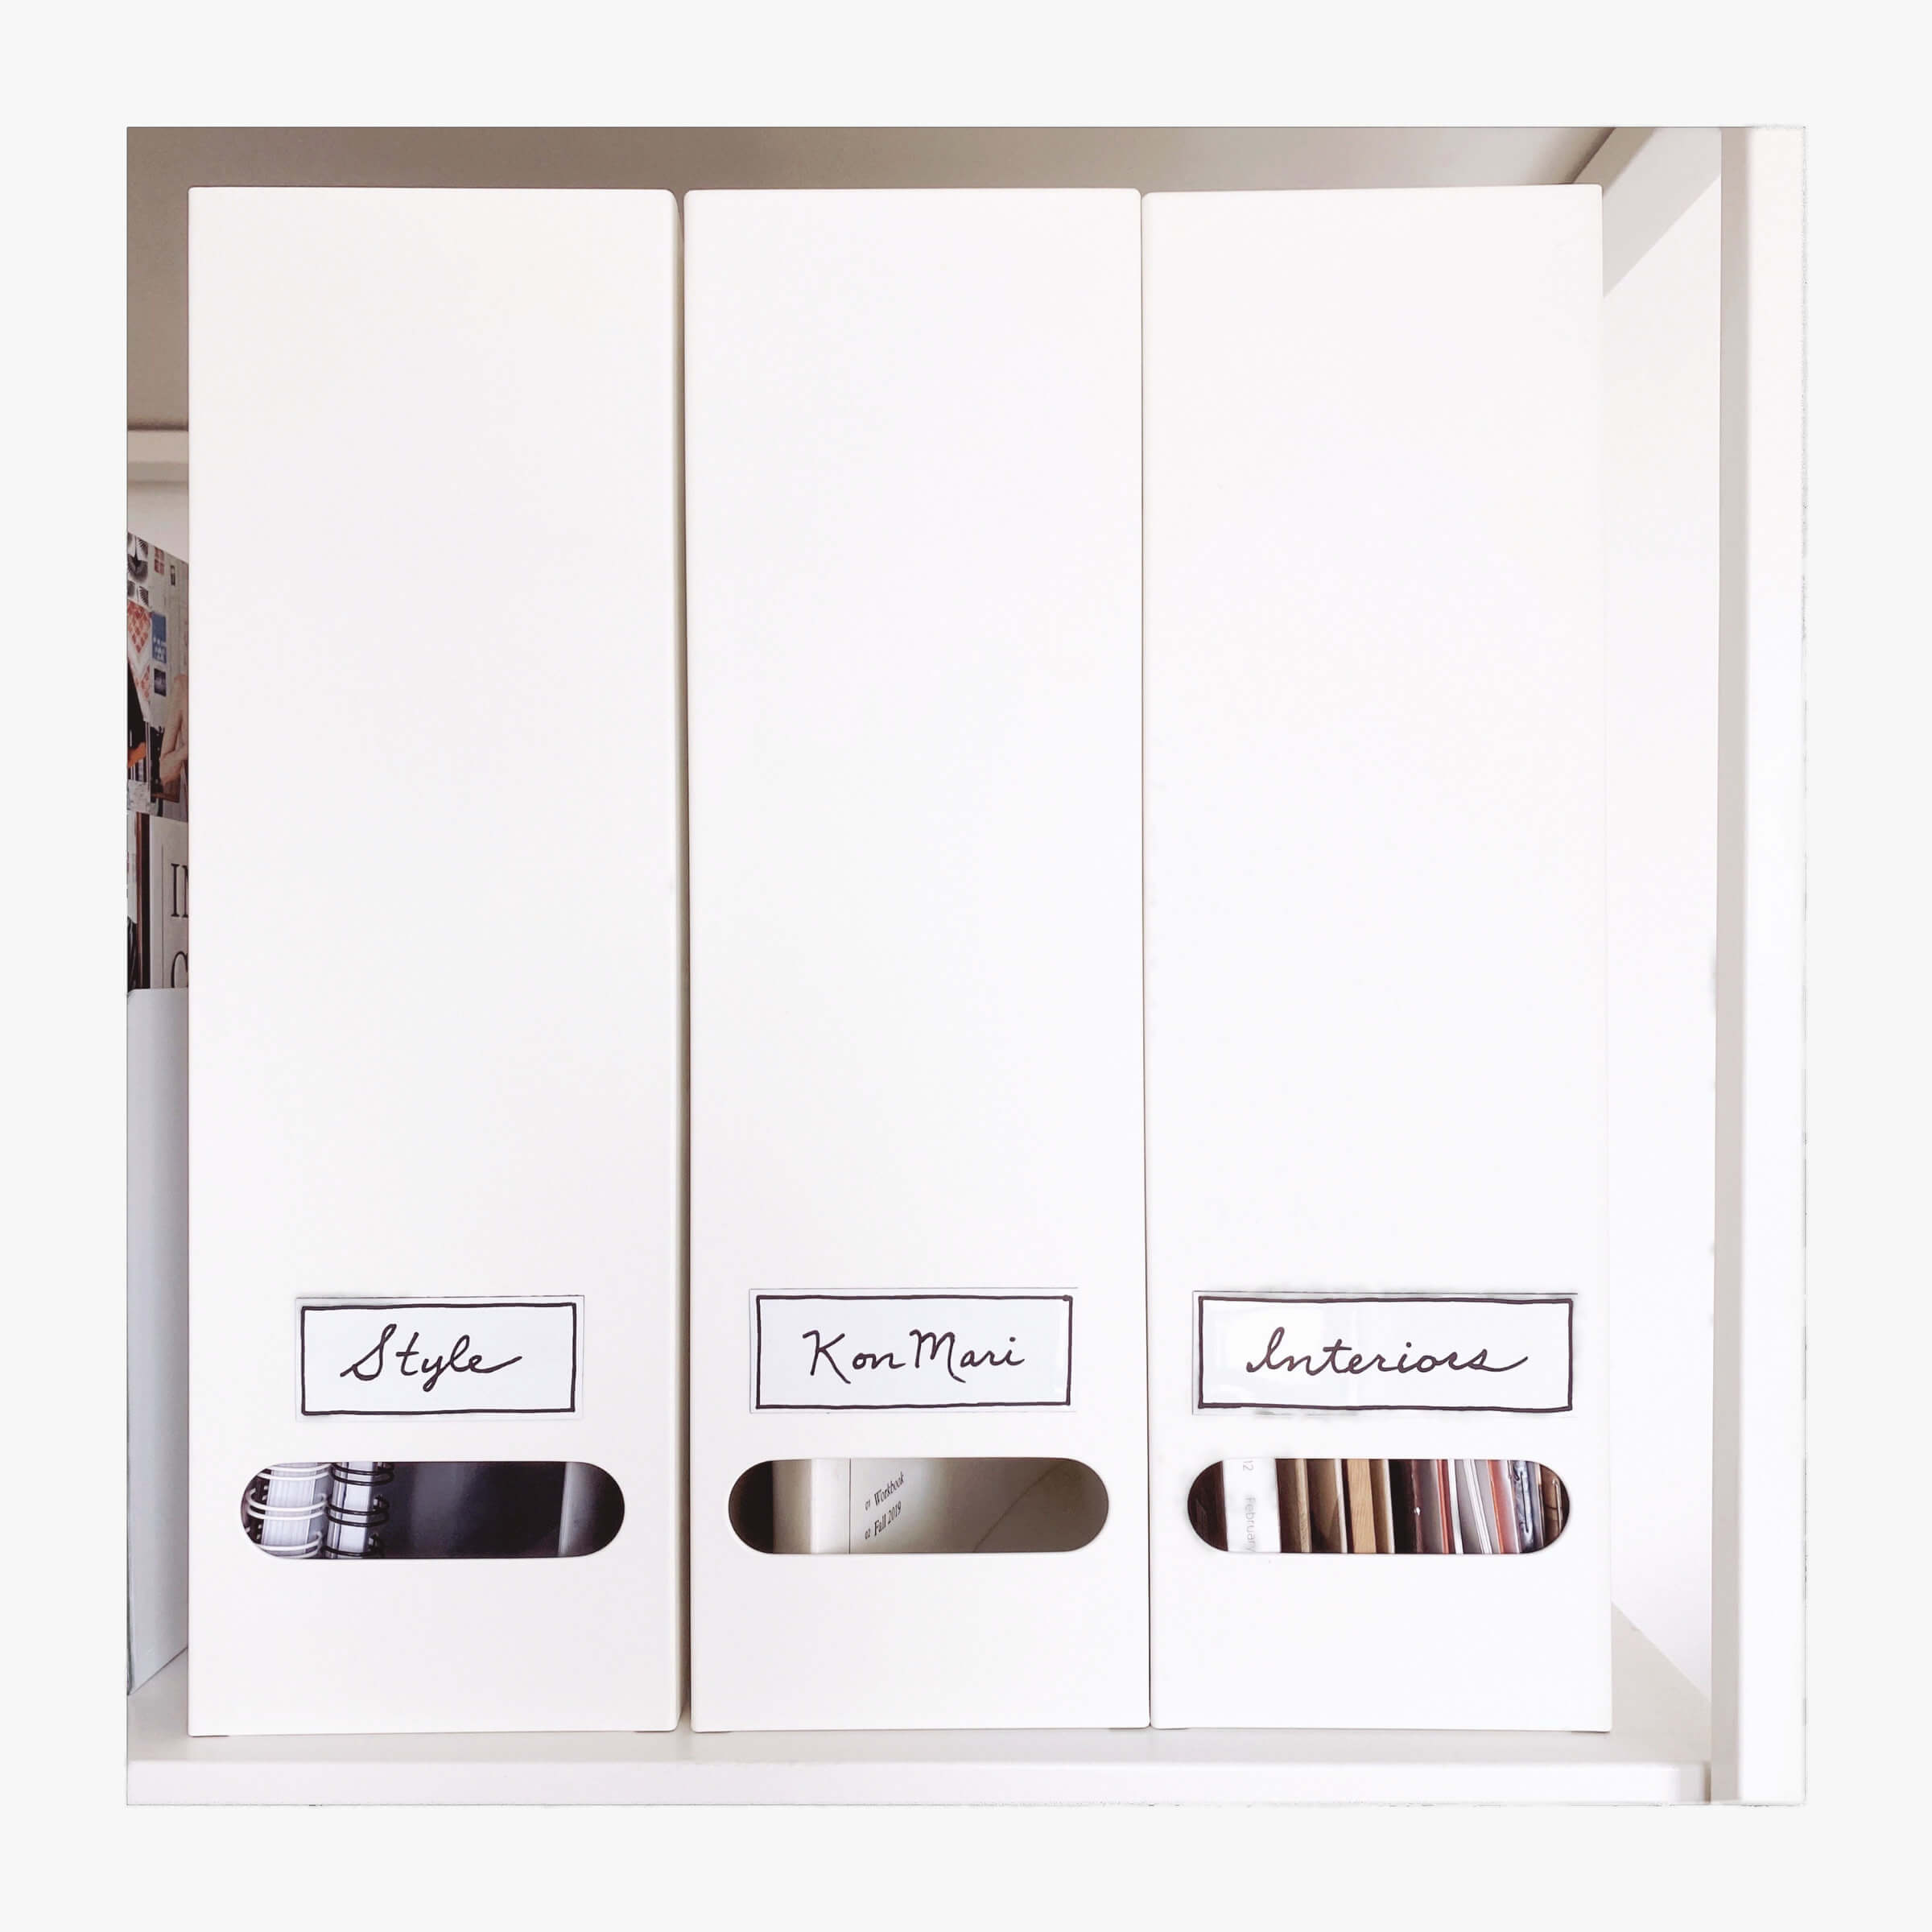 KonMari Tidying - Category Three: Papers. Tidy White Metal Filing Boxes On Shelves, Labelled: Style, KonMari & Interiors.